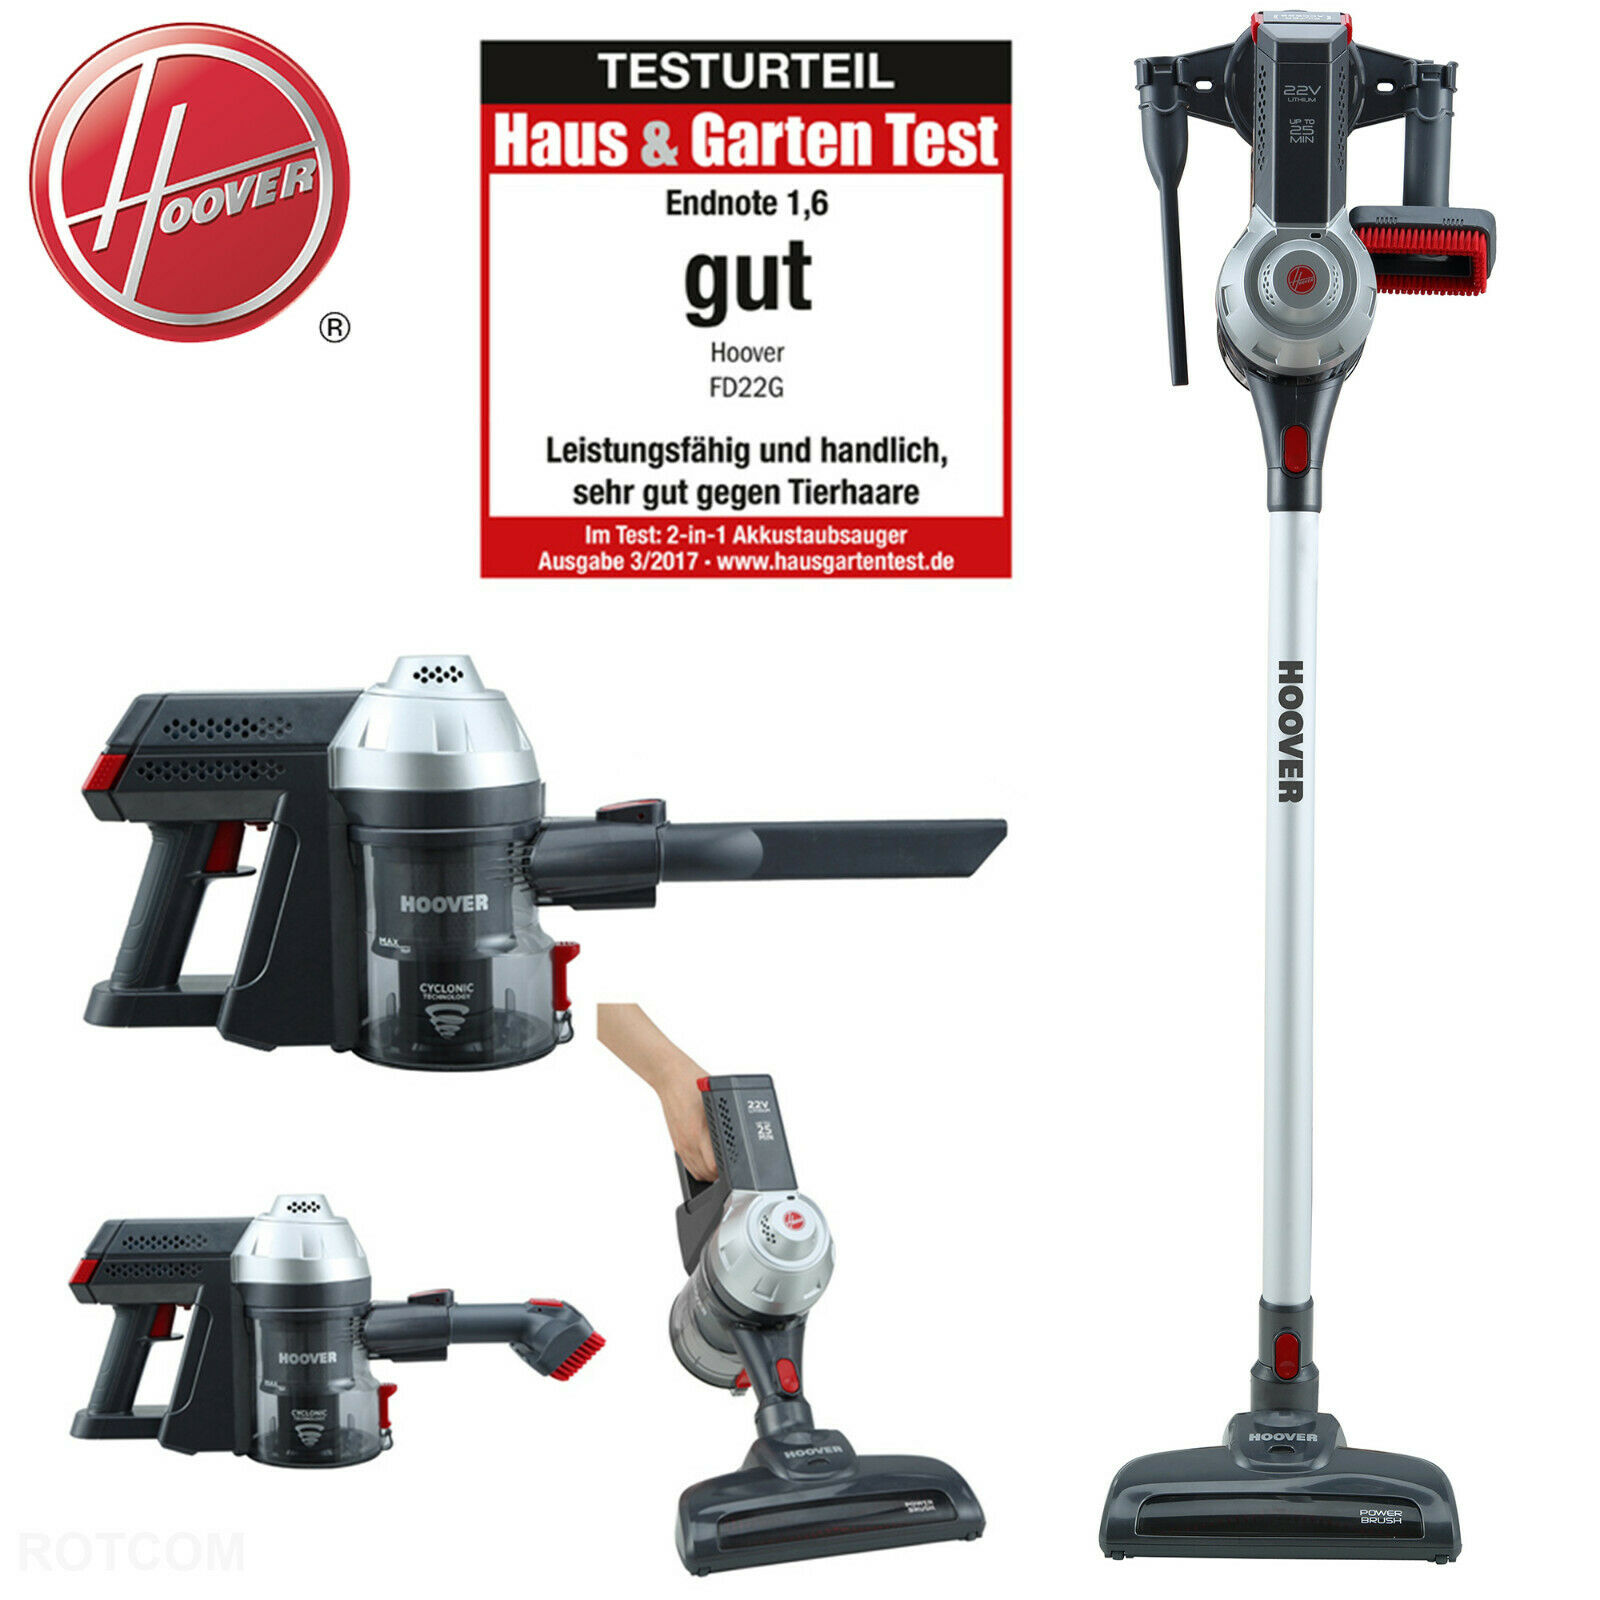 hoover freedom fd22g akkuhandstaubsauger 2 in 1 22 2 v staubsauger akku eur 129 90. Black Bedroom Furniture Sets. Home Design Ideas